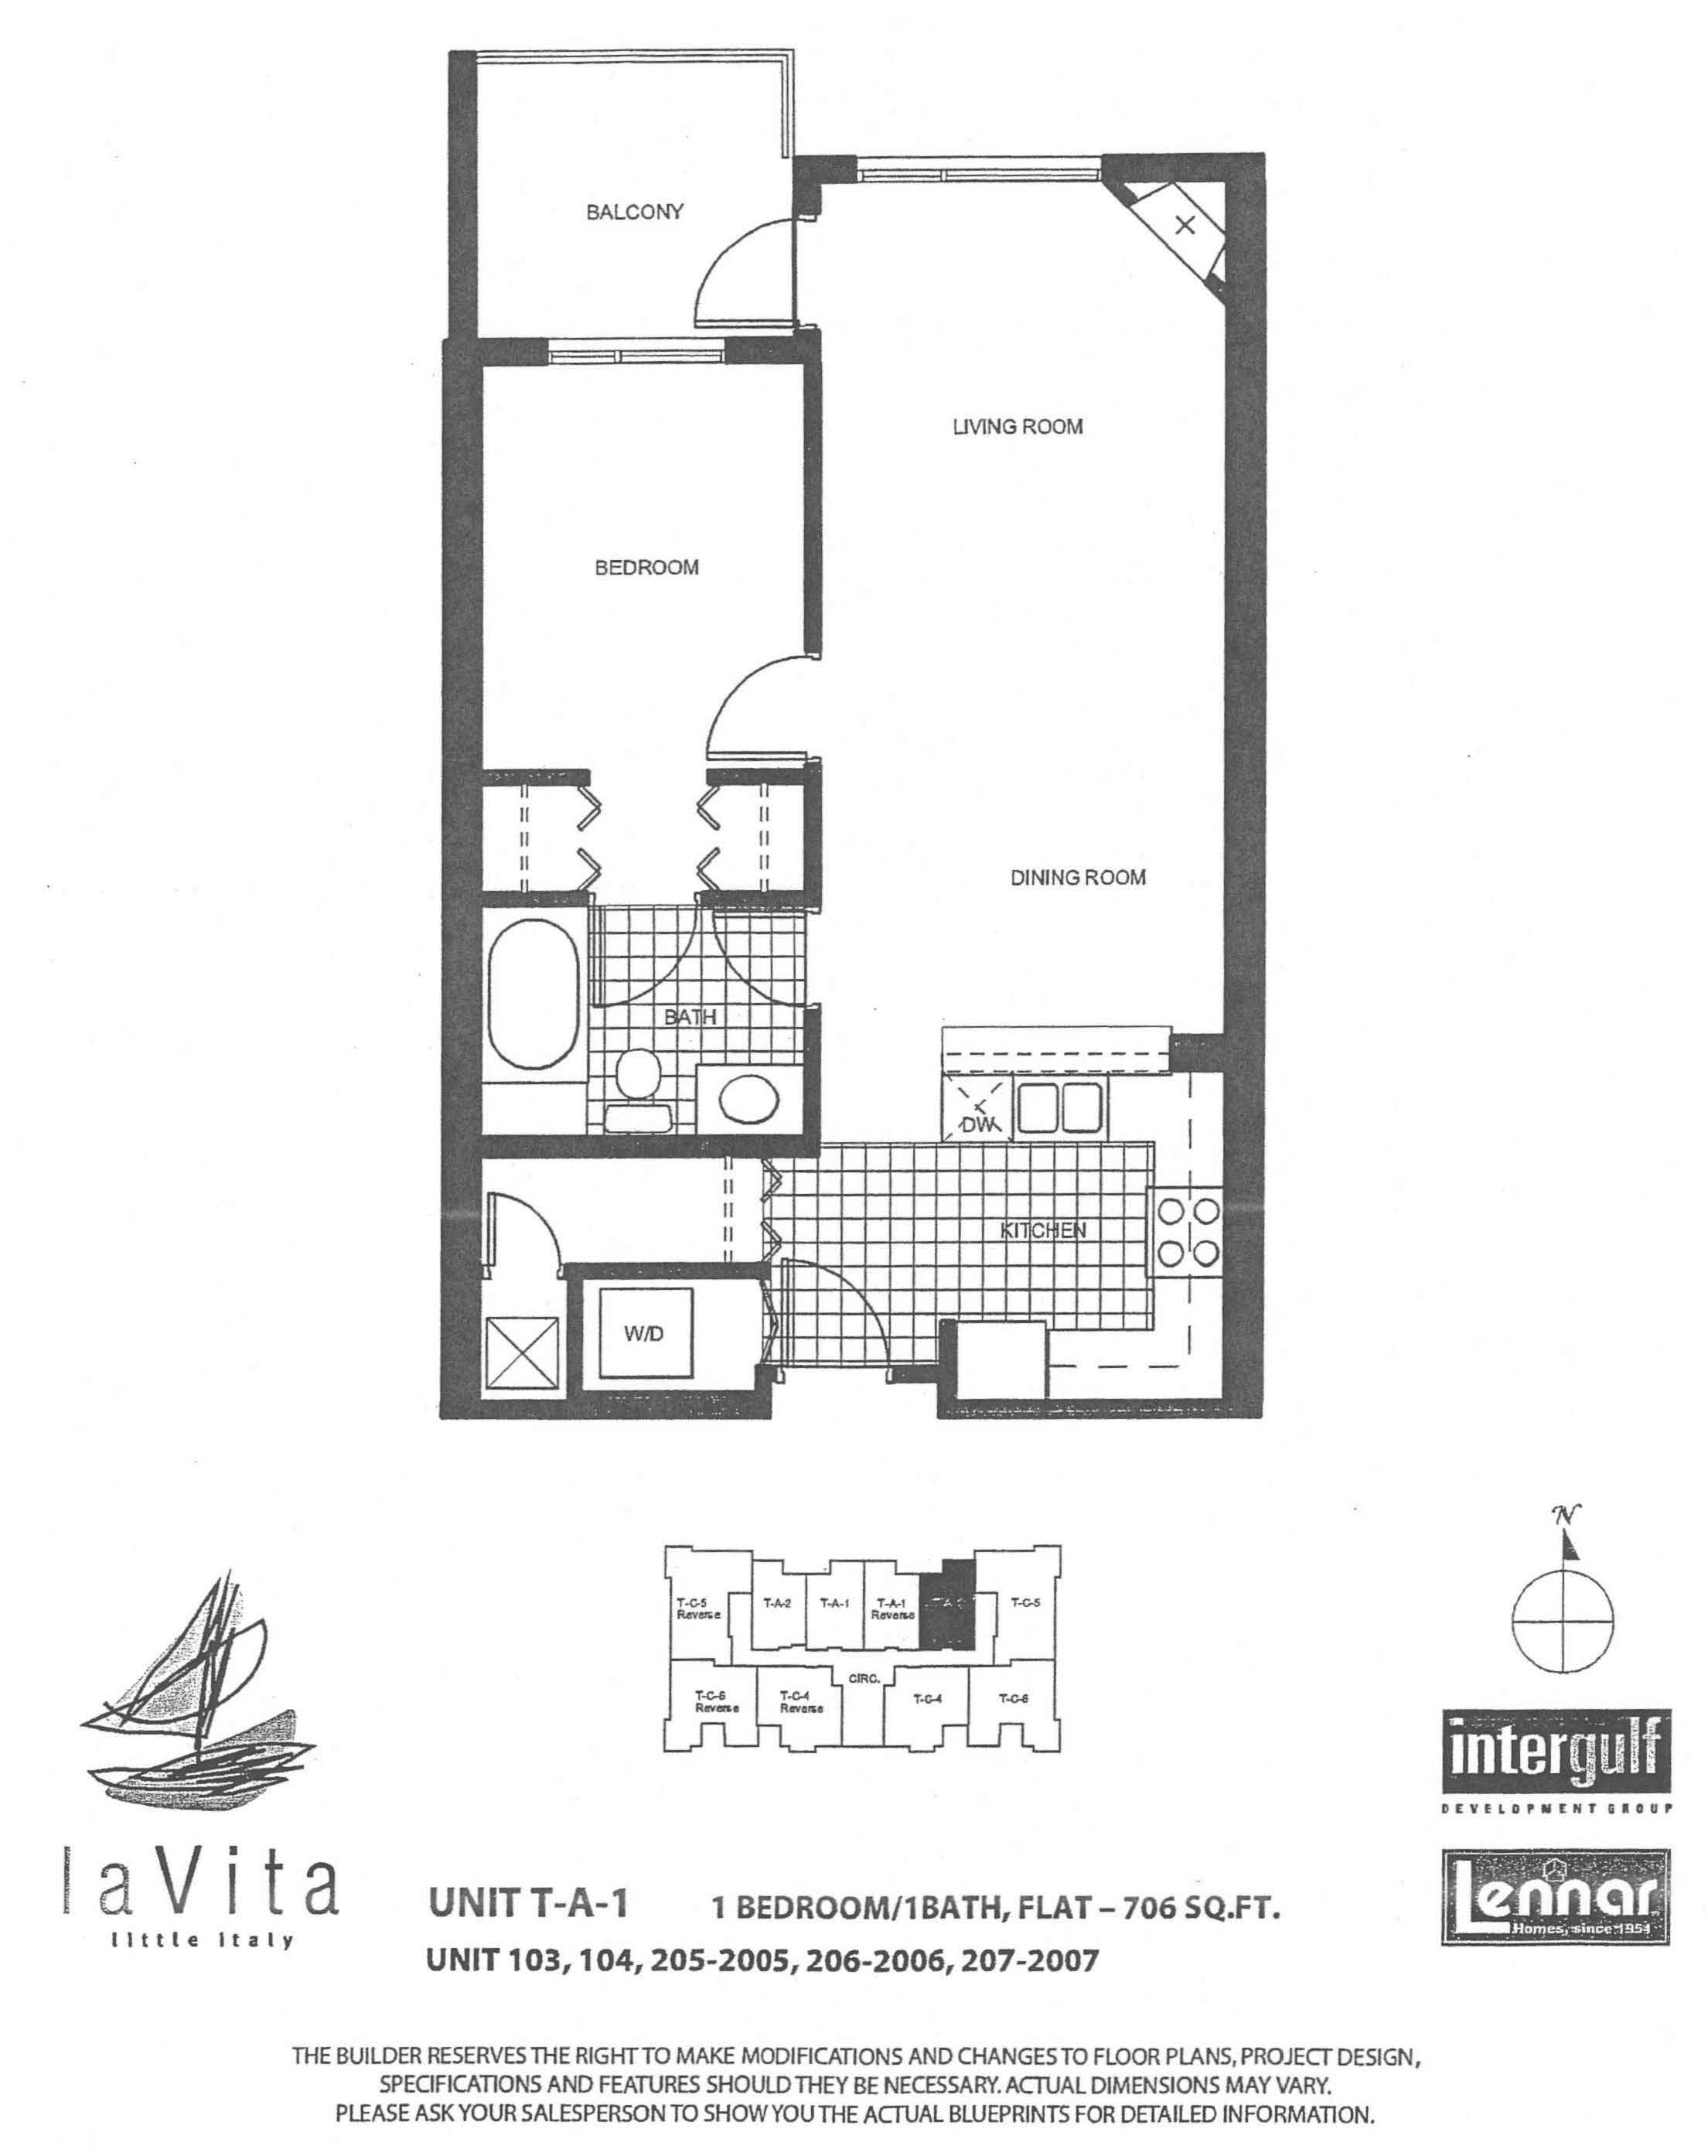 La Vita Tower A-1/ Unit 103, 104, 205 - 2005, 206 - 2006, 207 - 2007